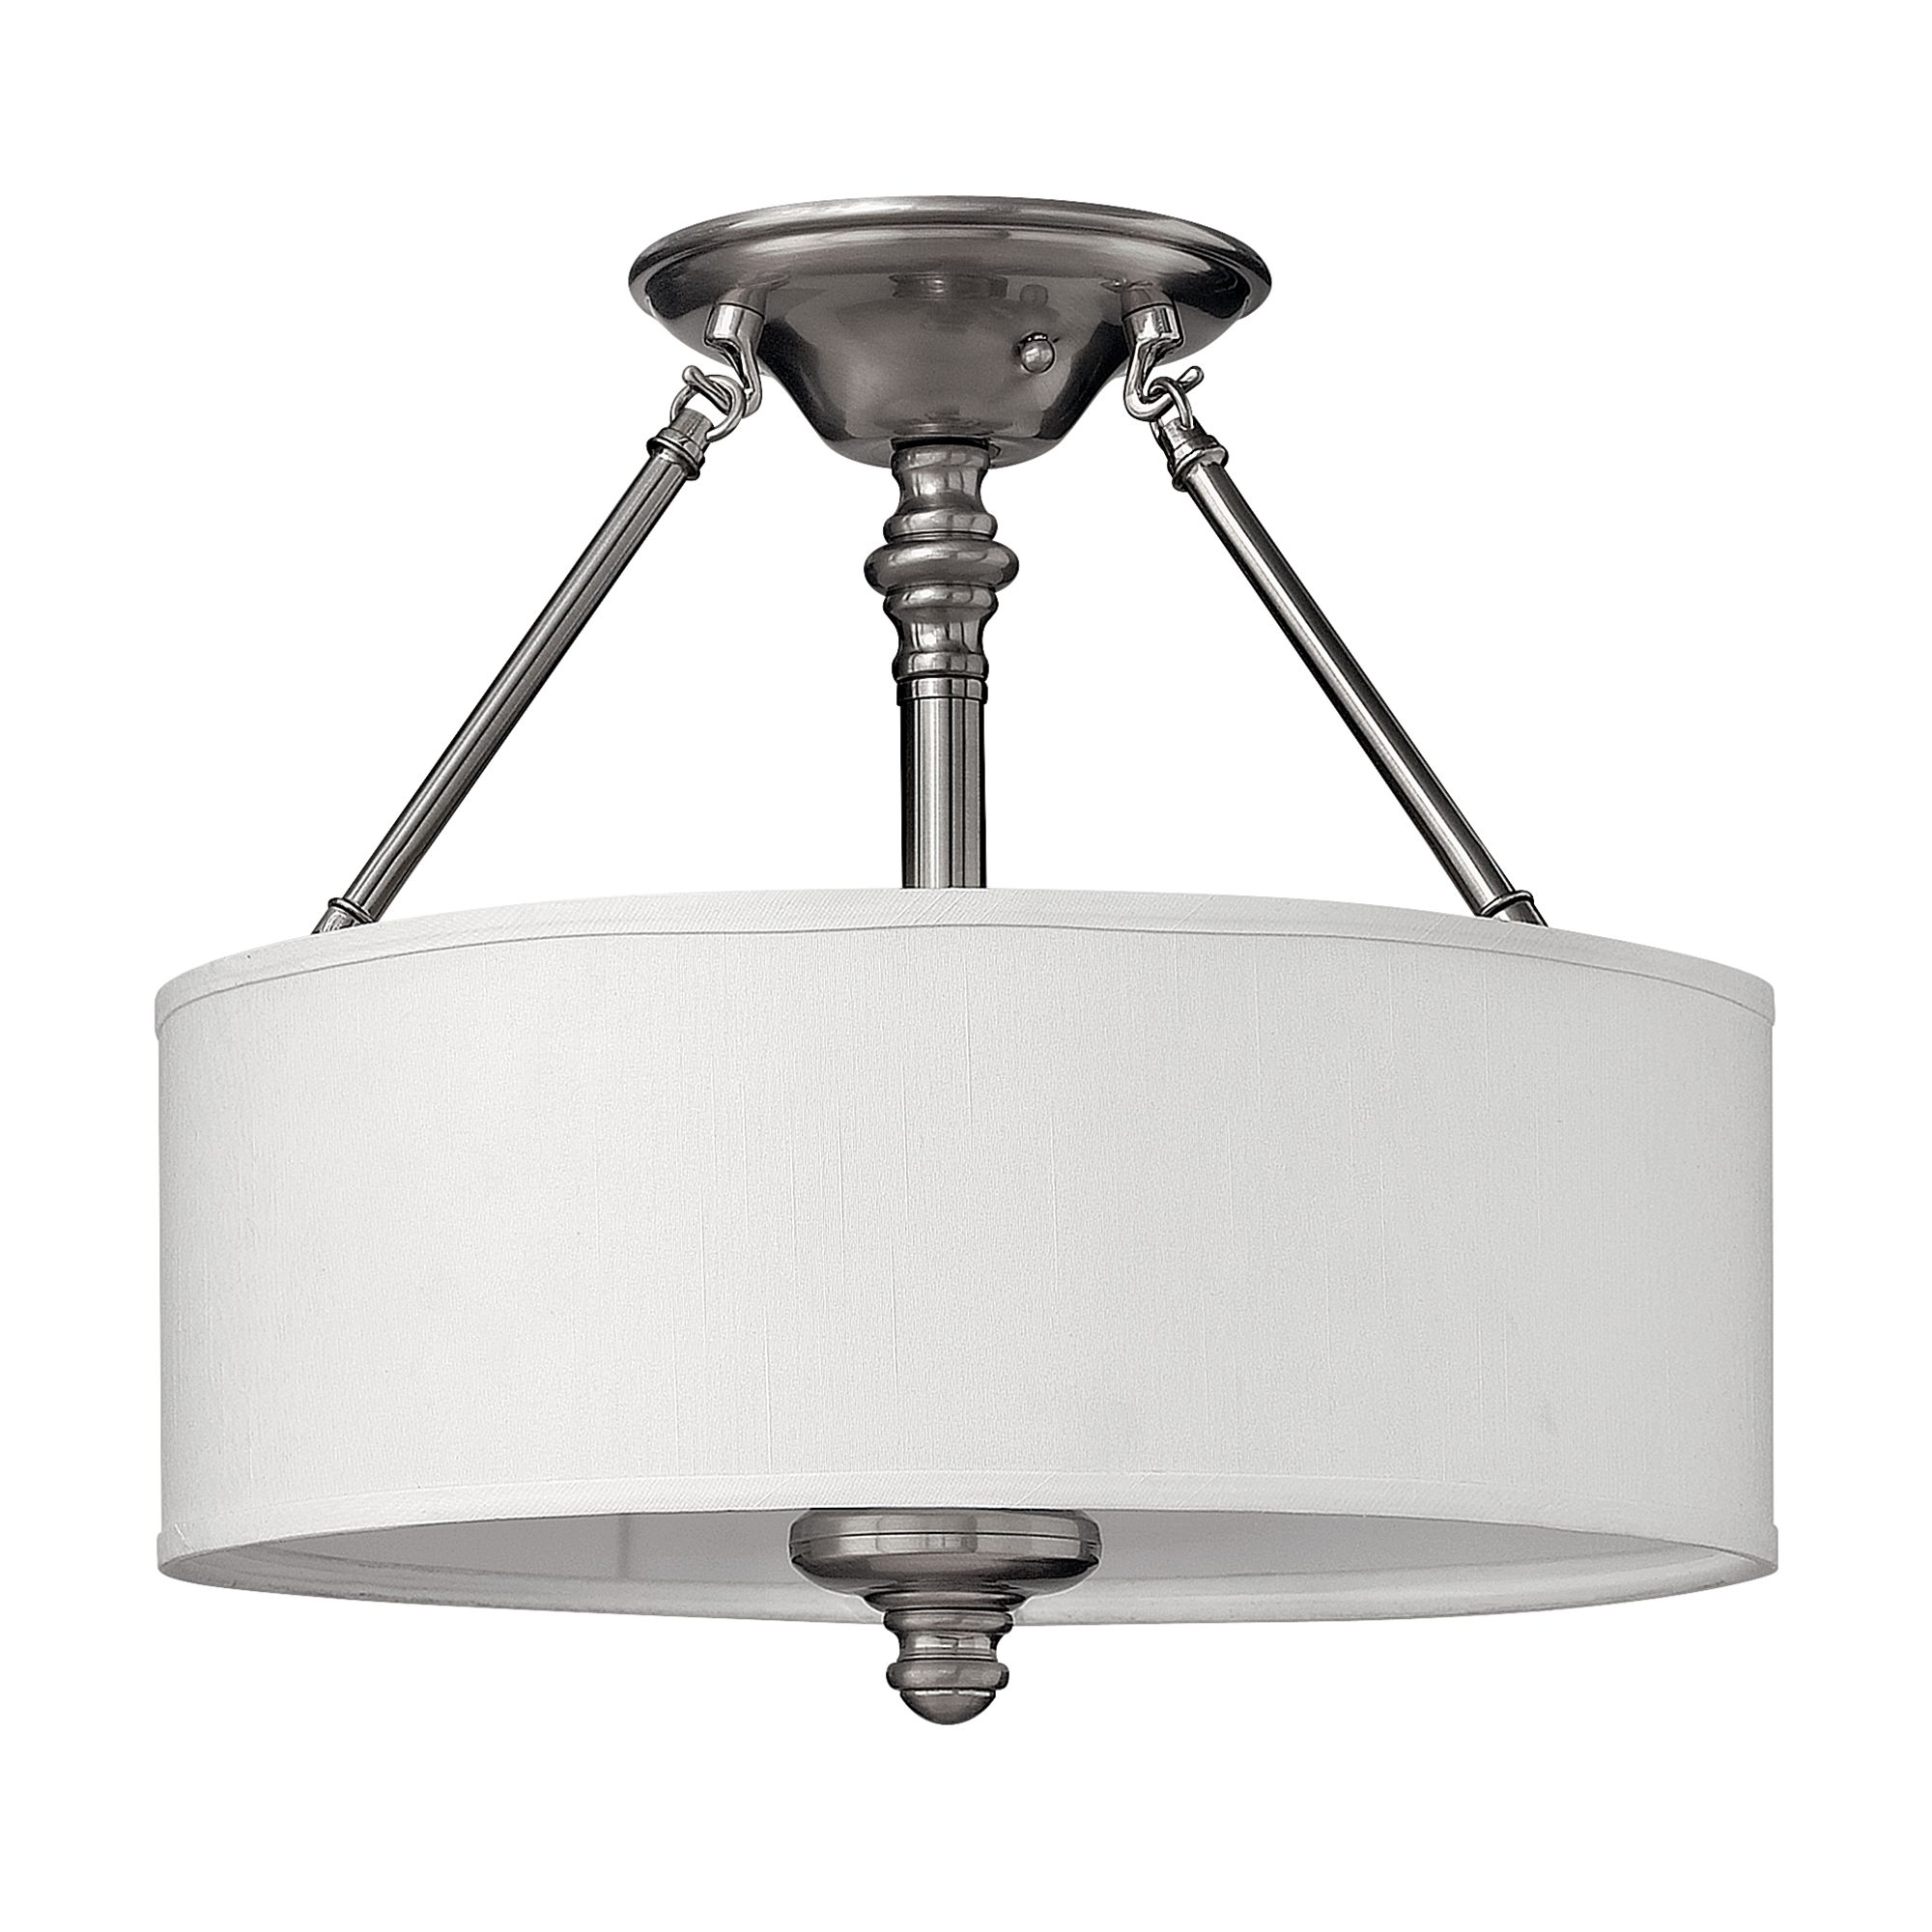 Sus 3 Light Semi Flush In Brushed Nickel Complete With A White Fabric Shade Hinkley Hk Sf